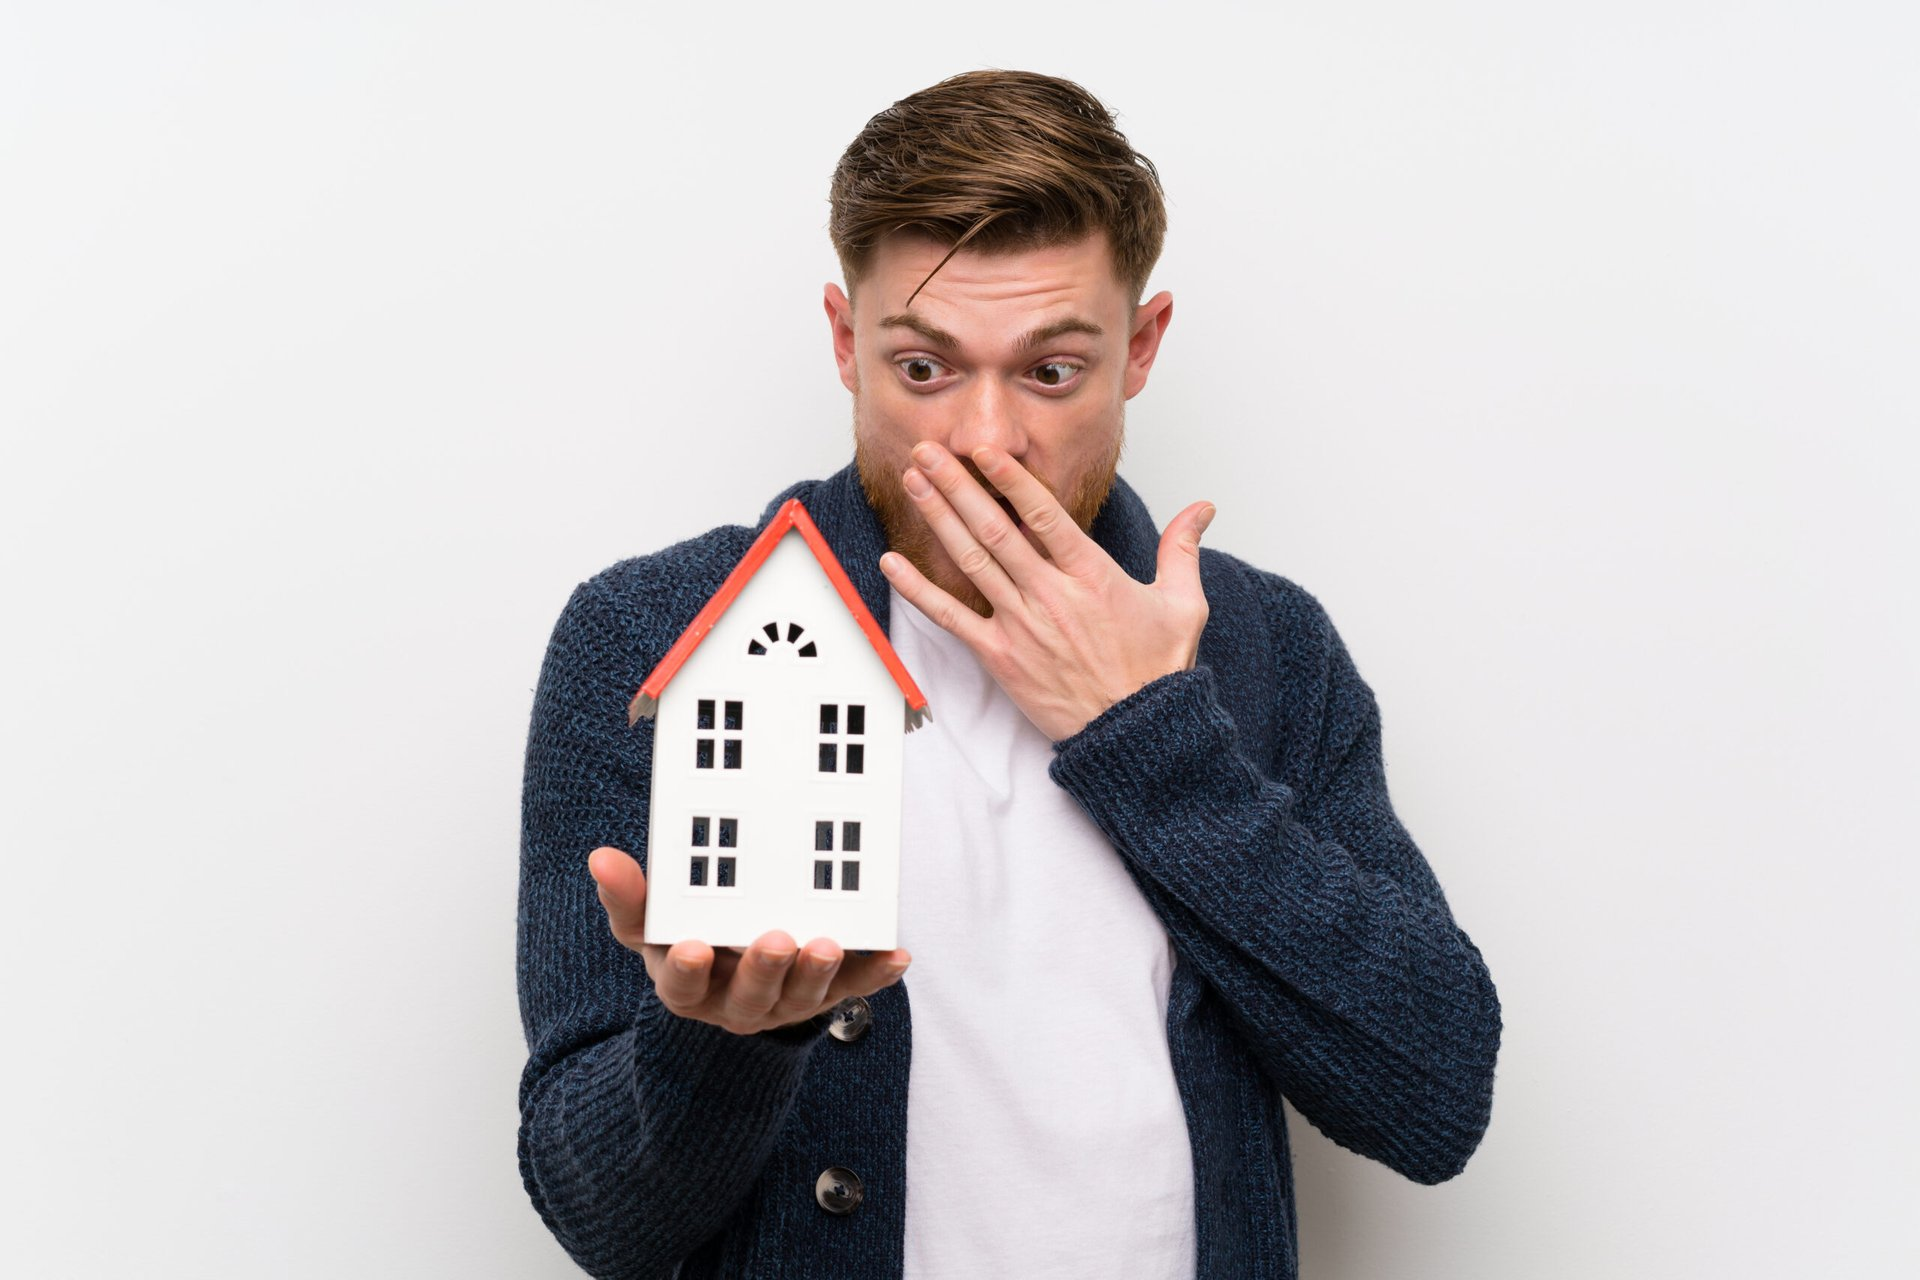 Worried man holding small house